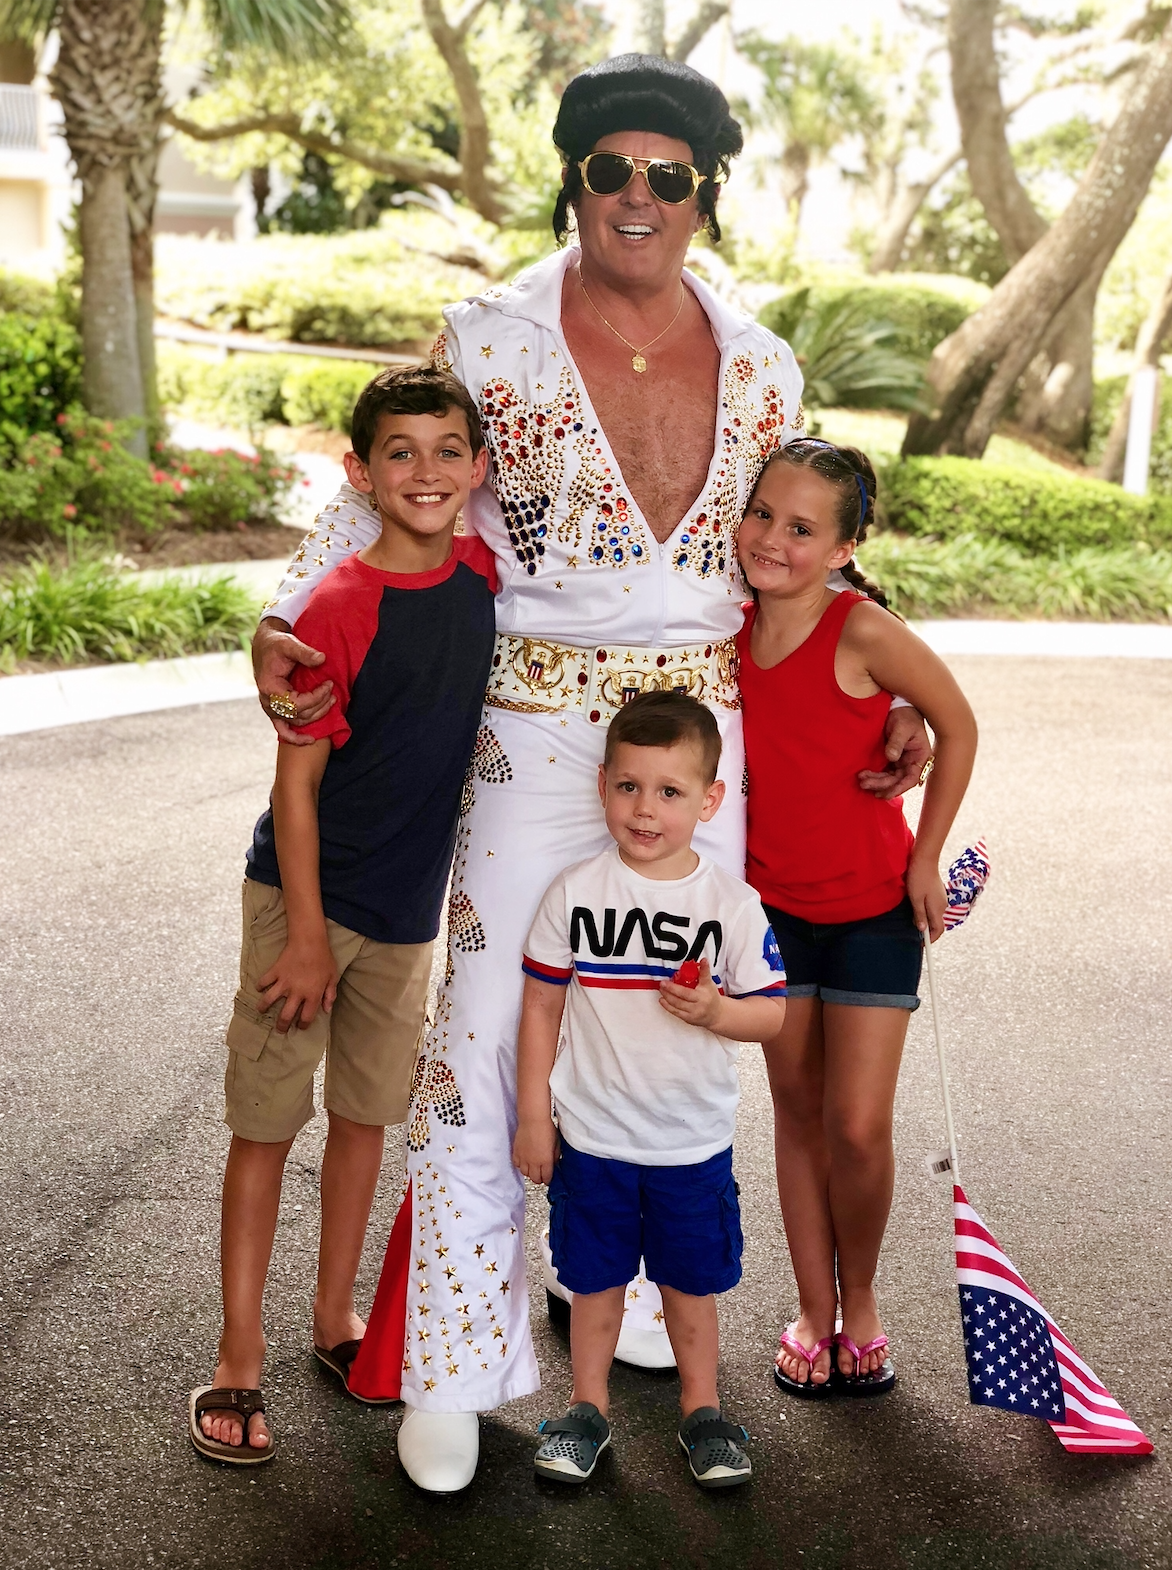 Joining the kiddos for the fourth parade 2019